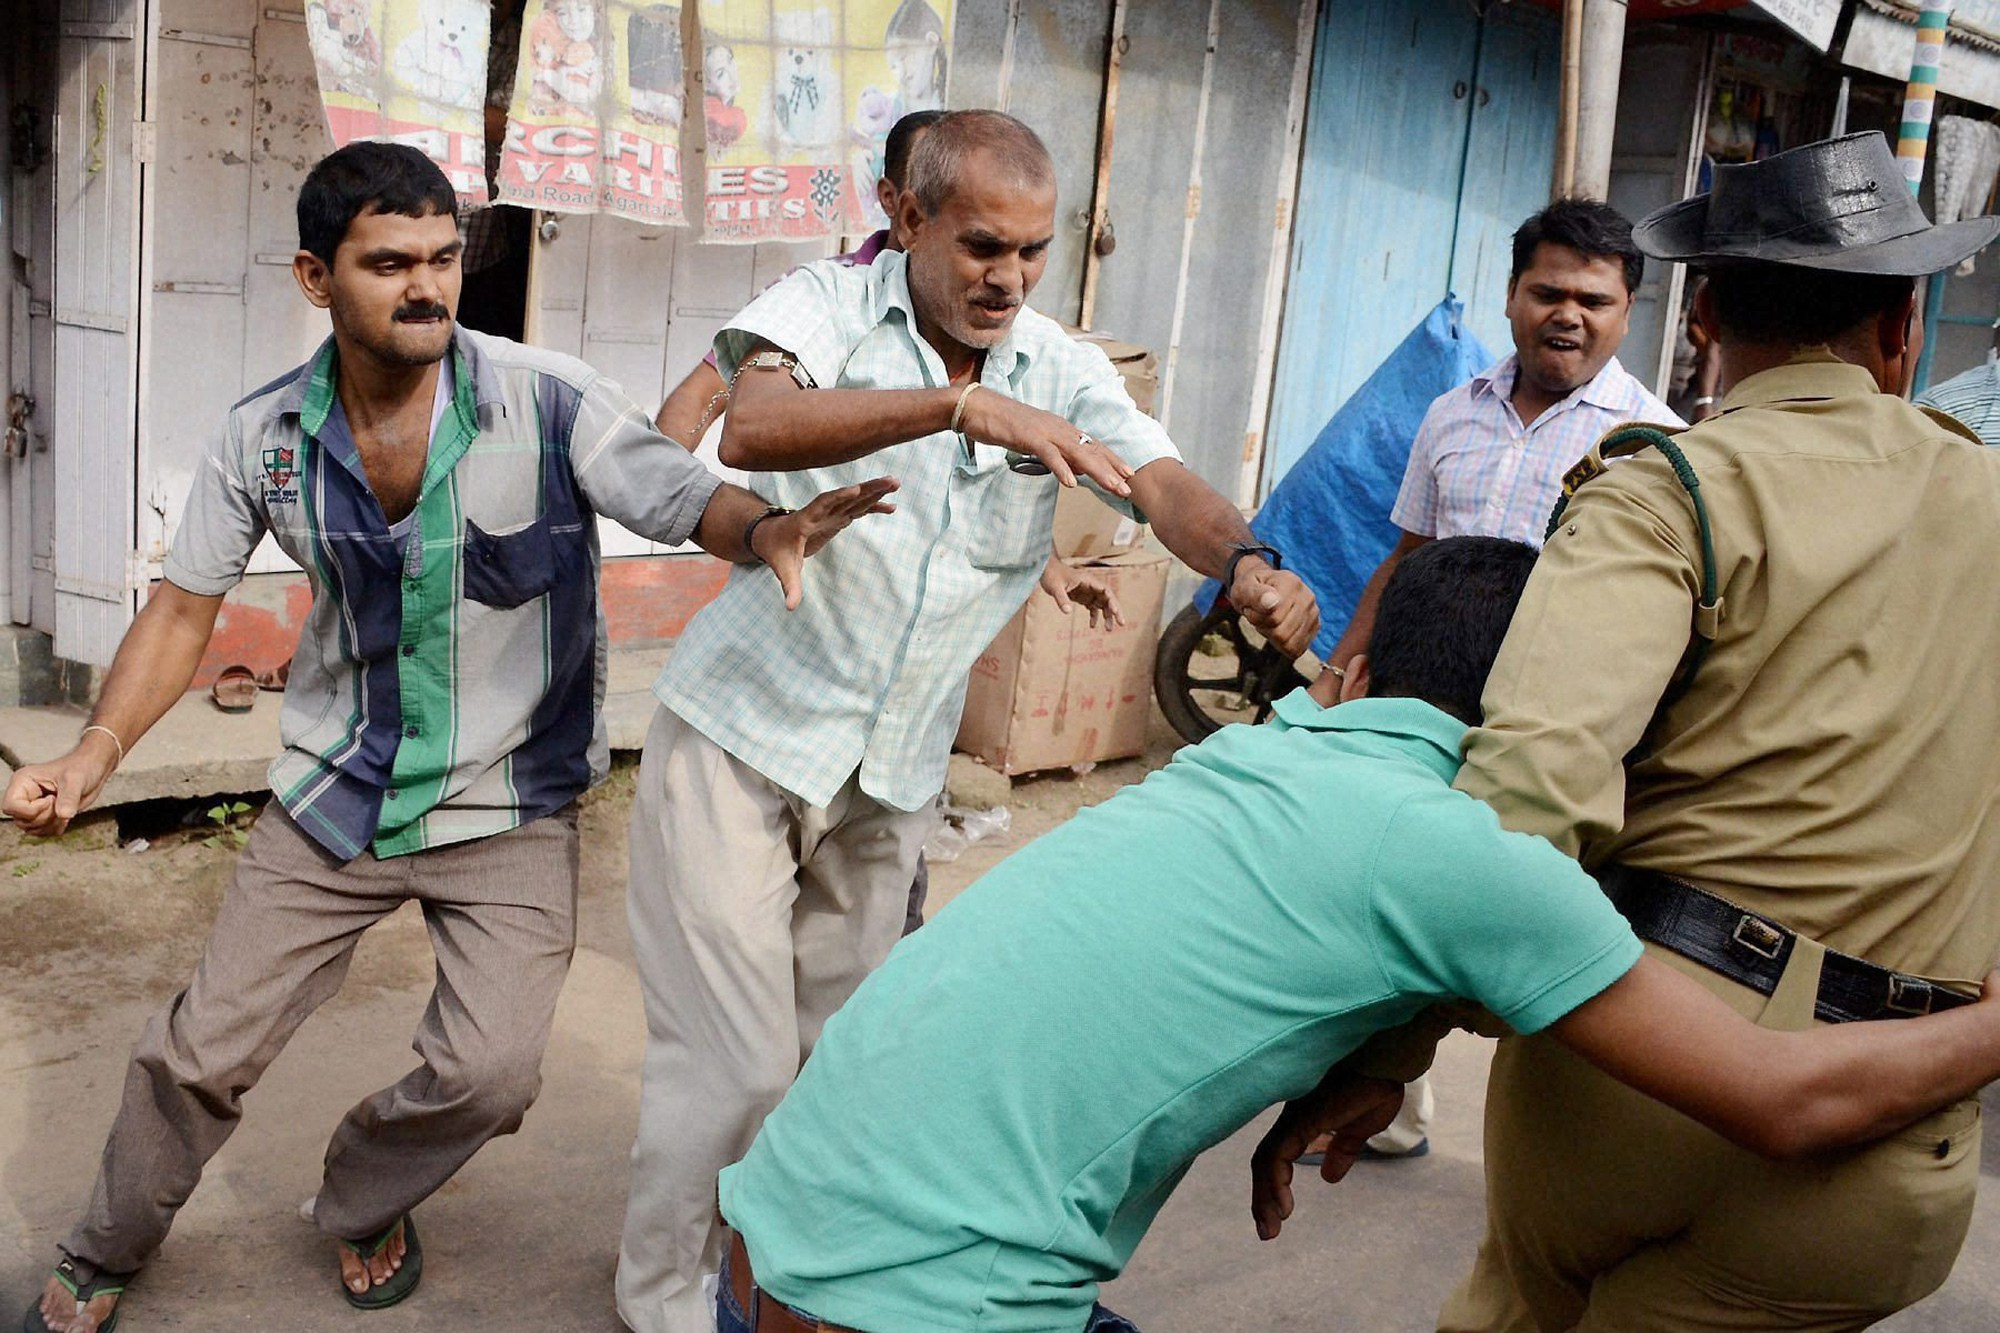 Police intervenes during a clash between Indigenous People's Front of Tripura (IPFT) members and local Bengali people following an IPFT rally in Agartala. Credit: PTI